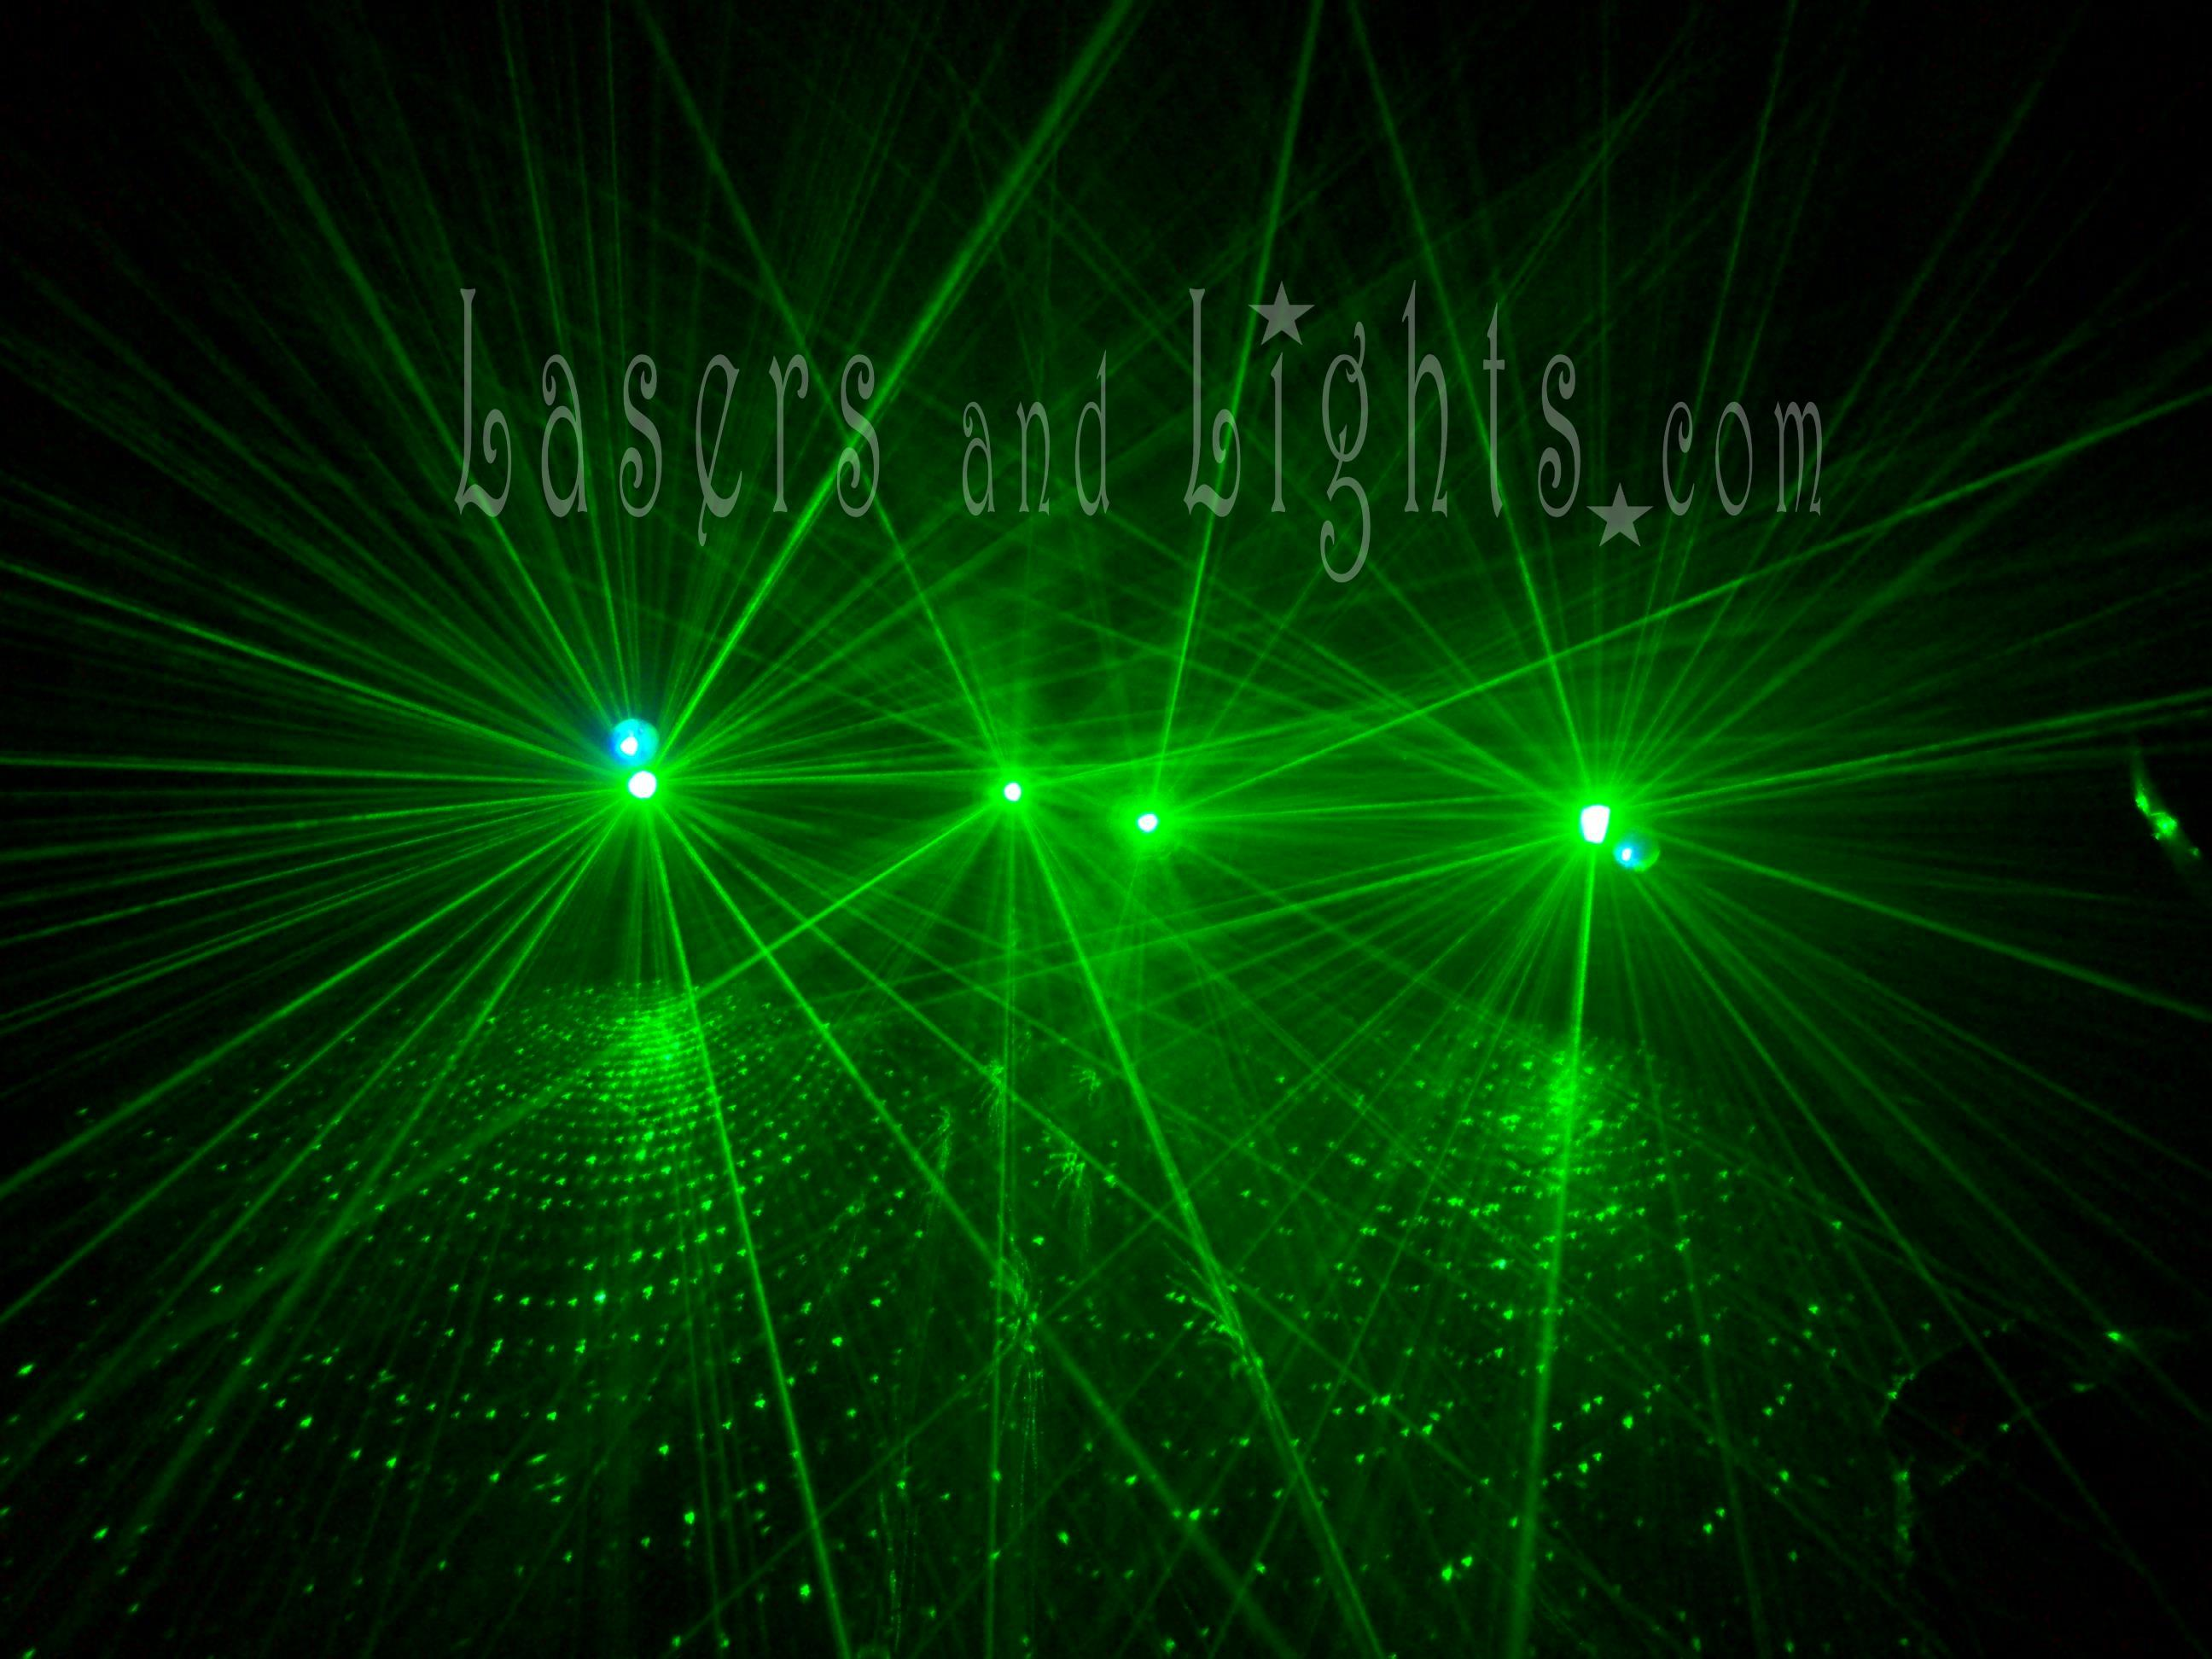 cobalt starfield laser page lights light bliss blog com iasos in stars lasersandlights and studio